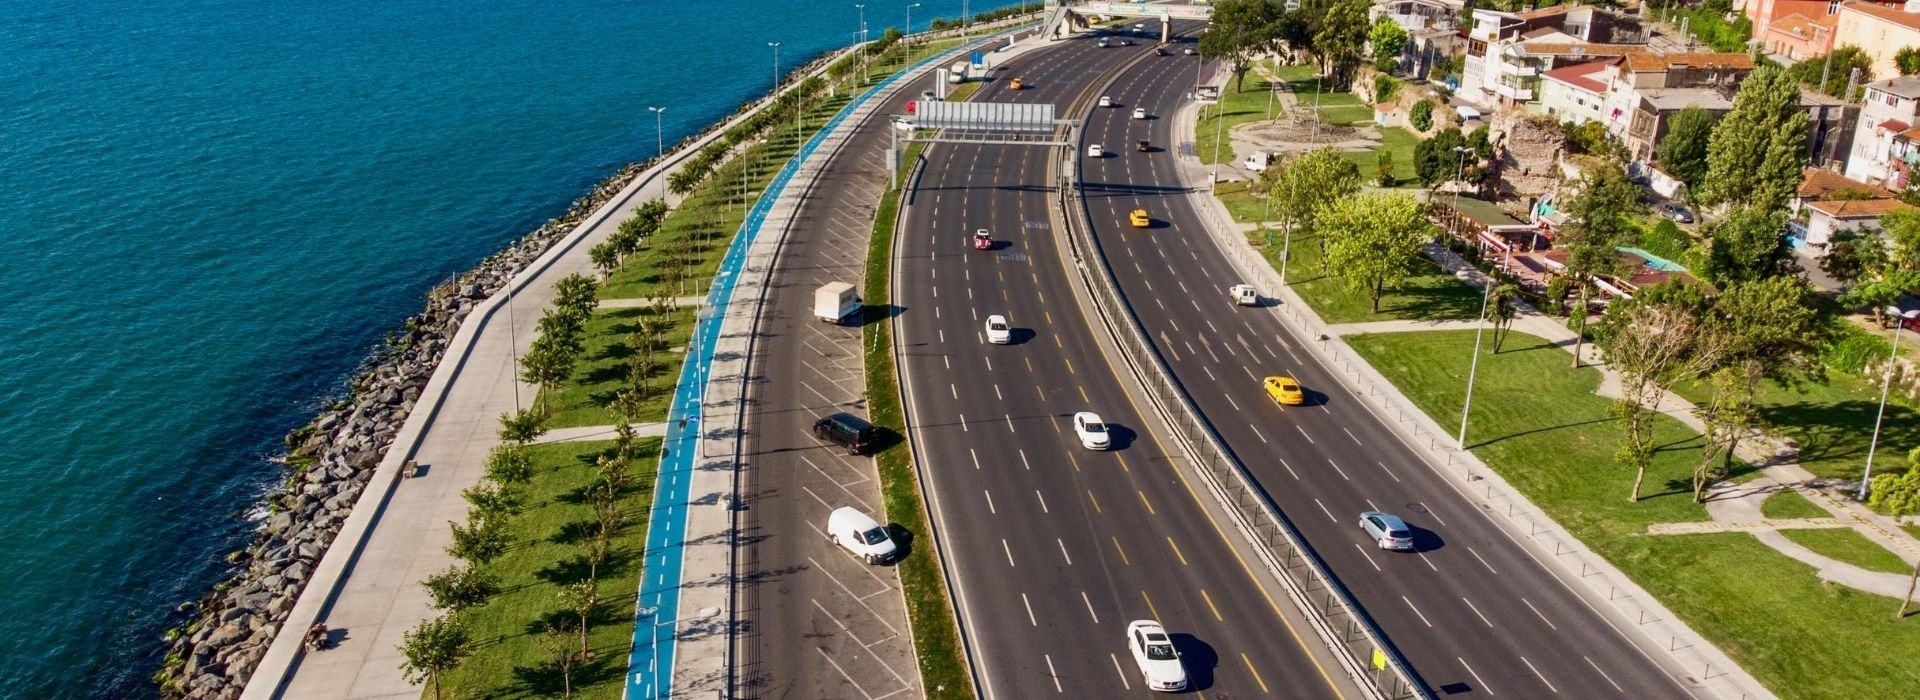 how to get from sabiha gokcen airport to bakirkoy